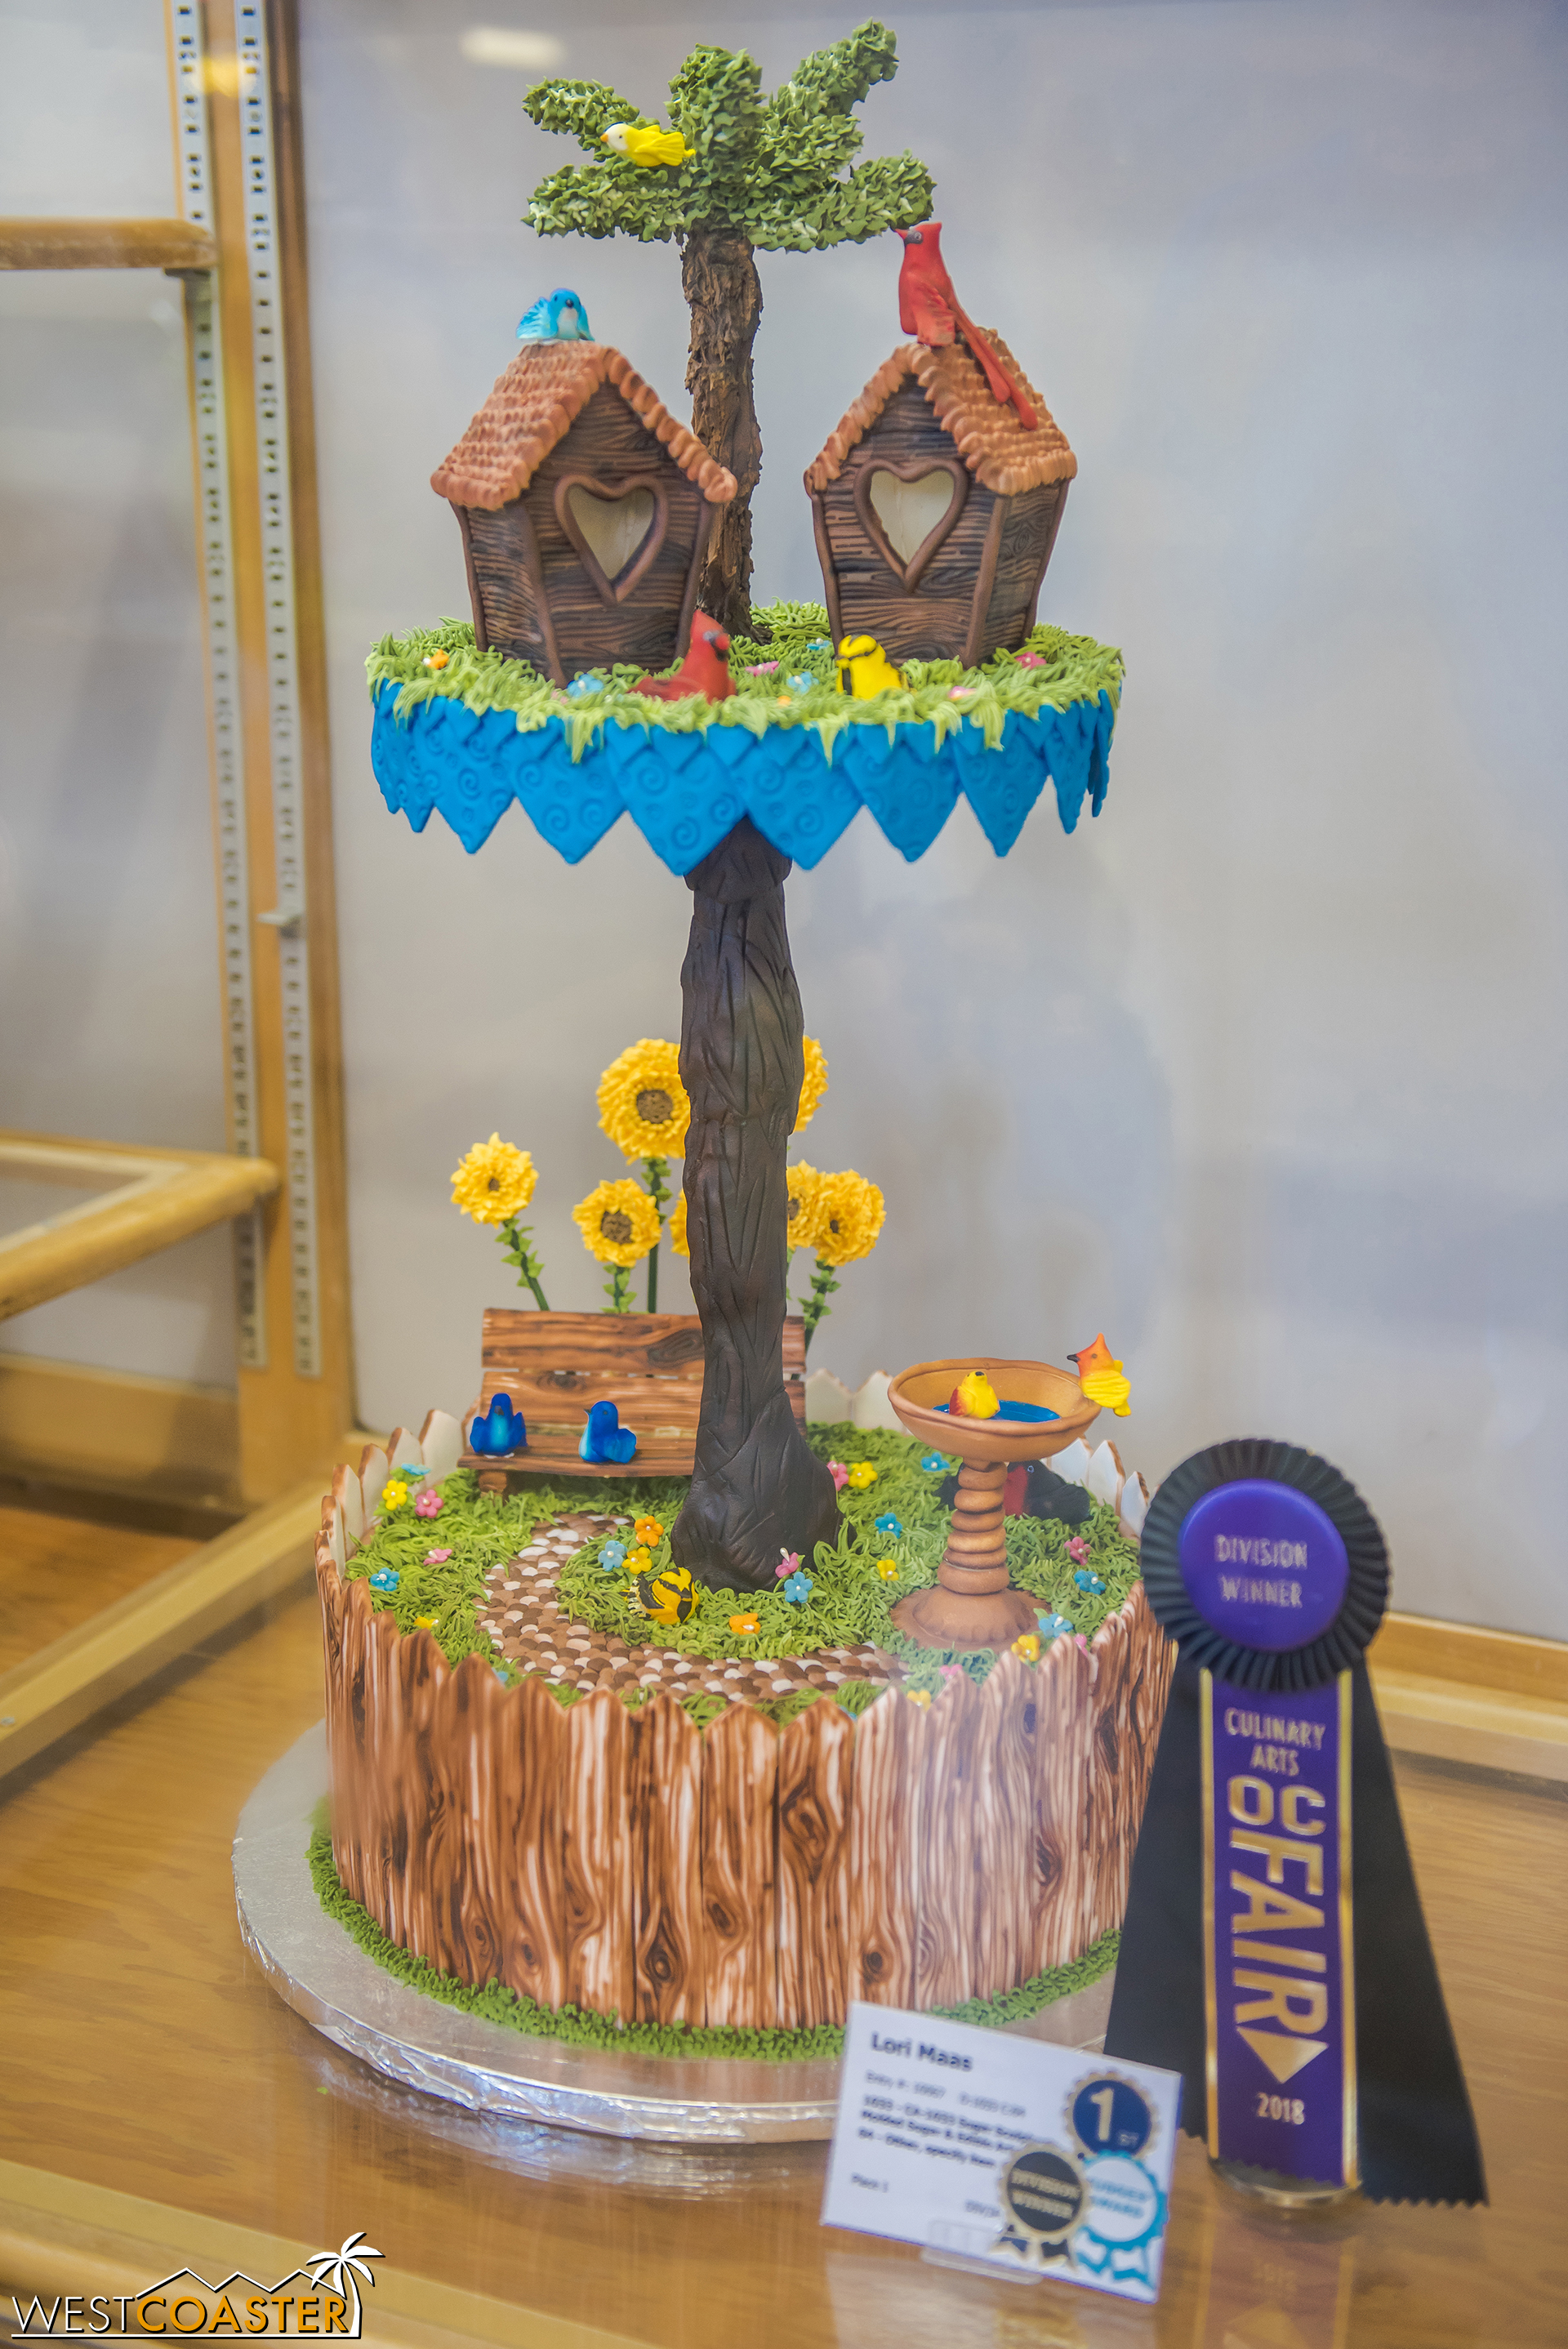 There are a lot of pretty amazing baking creations, and even familiar names who seem to rack up wins every year.